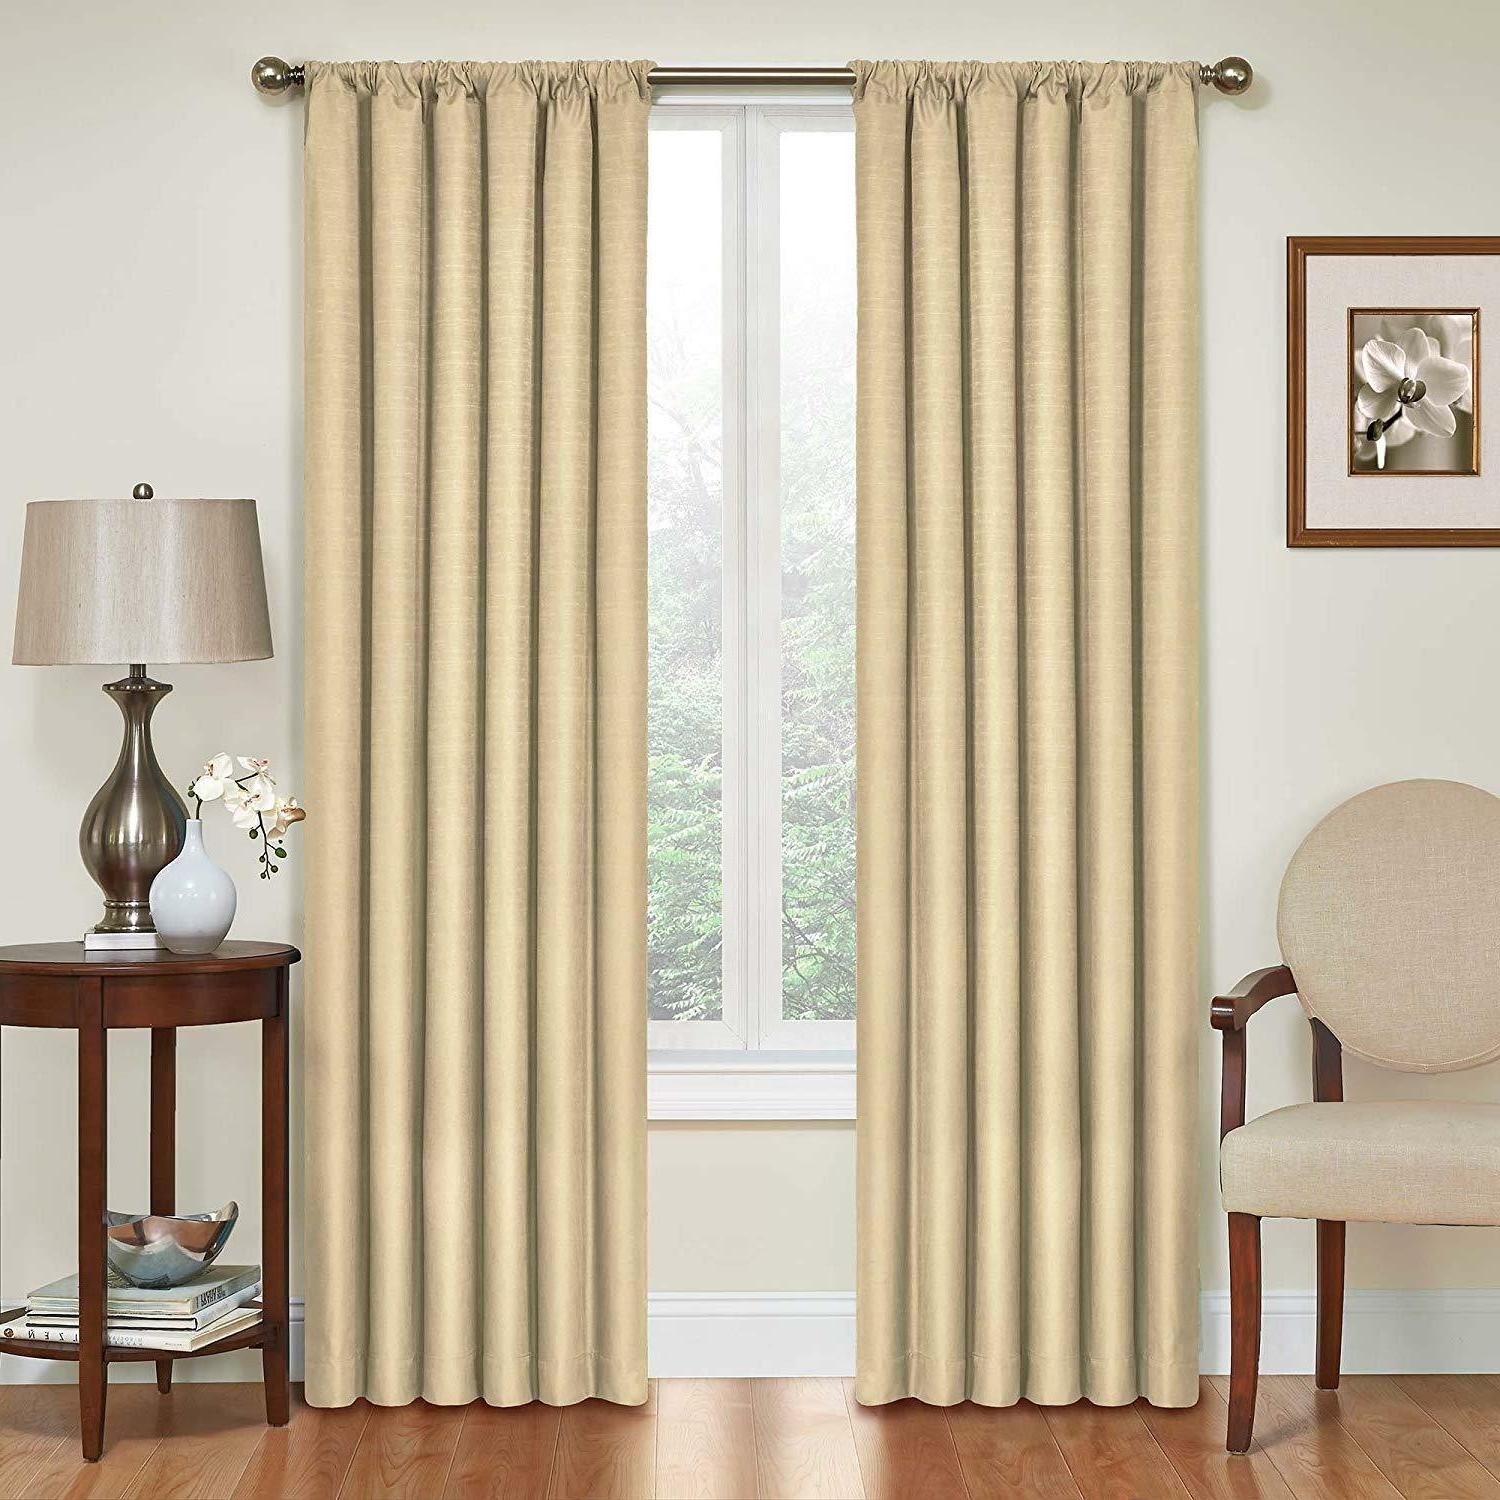 eclipse blackout curtains thermal curtain single panel